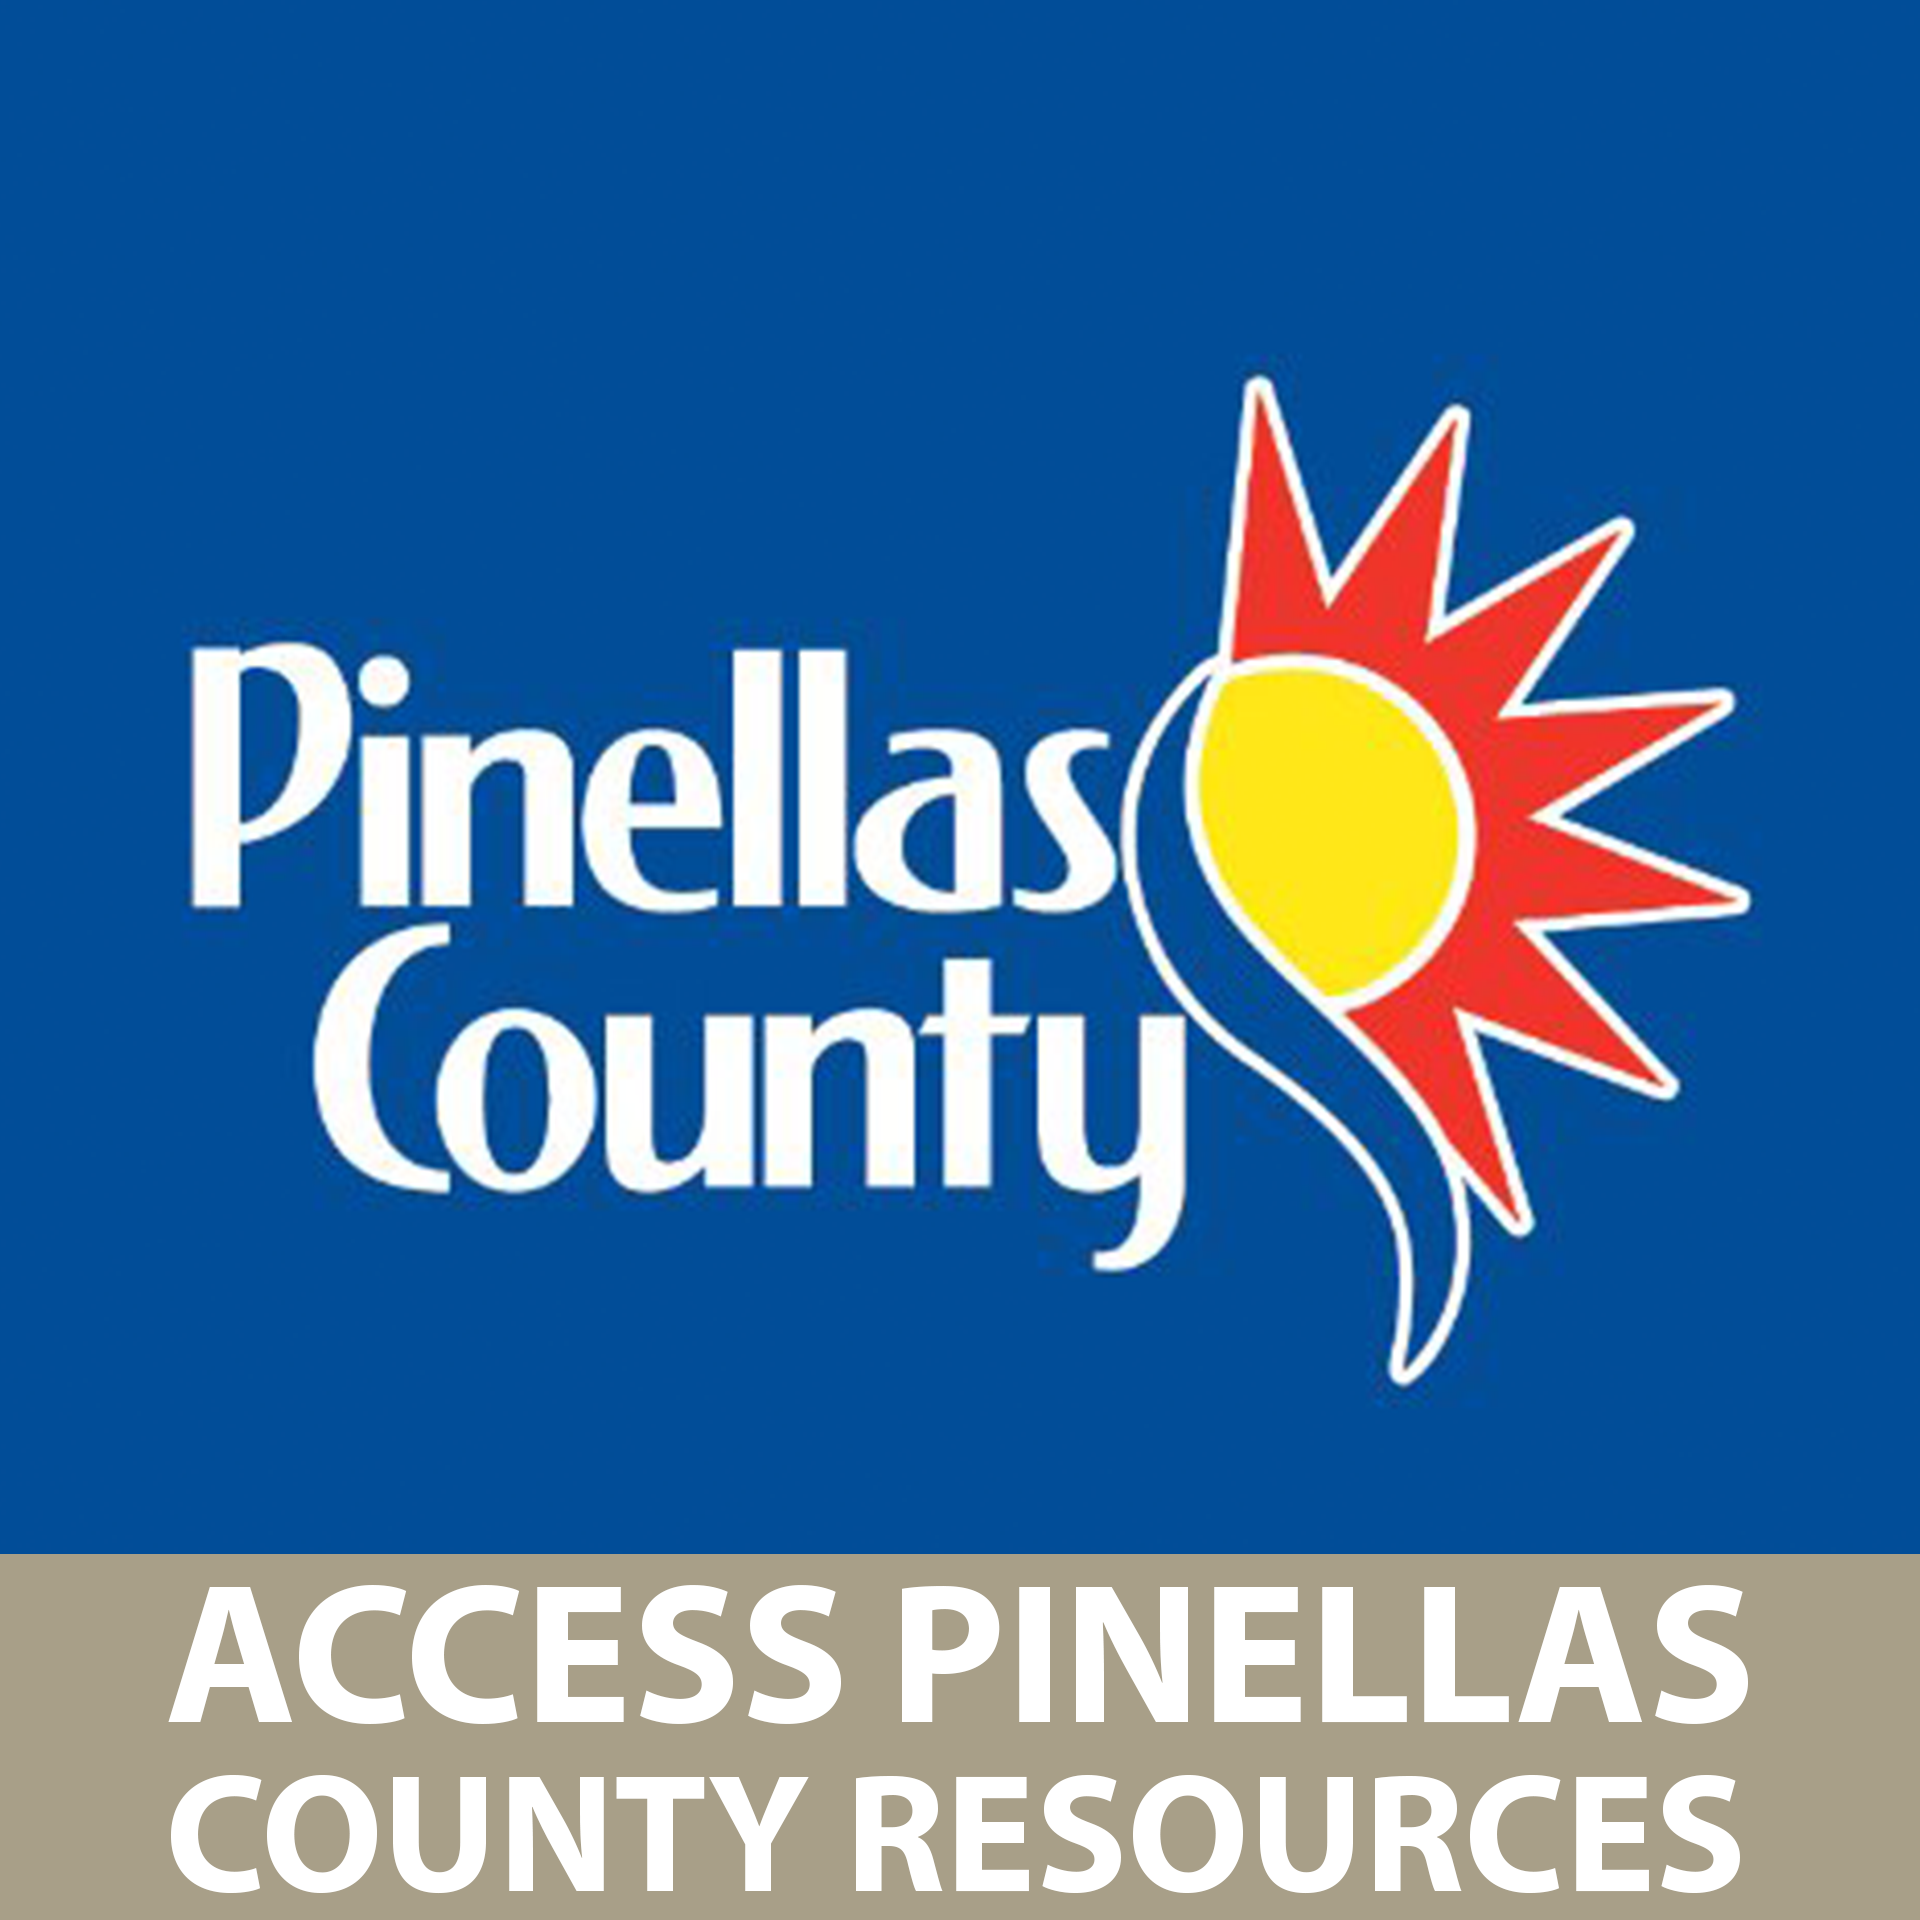 Access Pinellas County Resources Button with Pinellas County logo